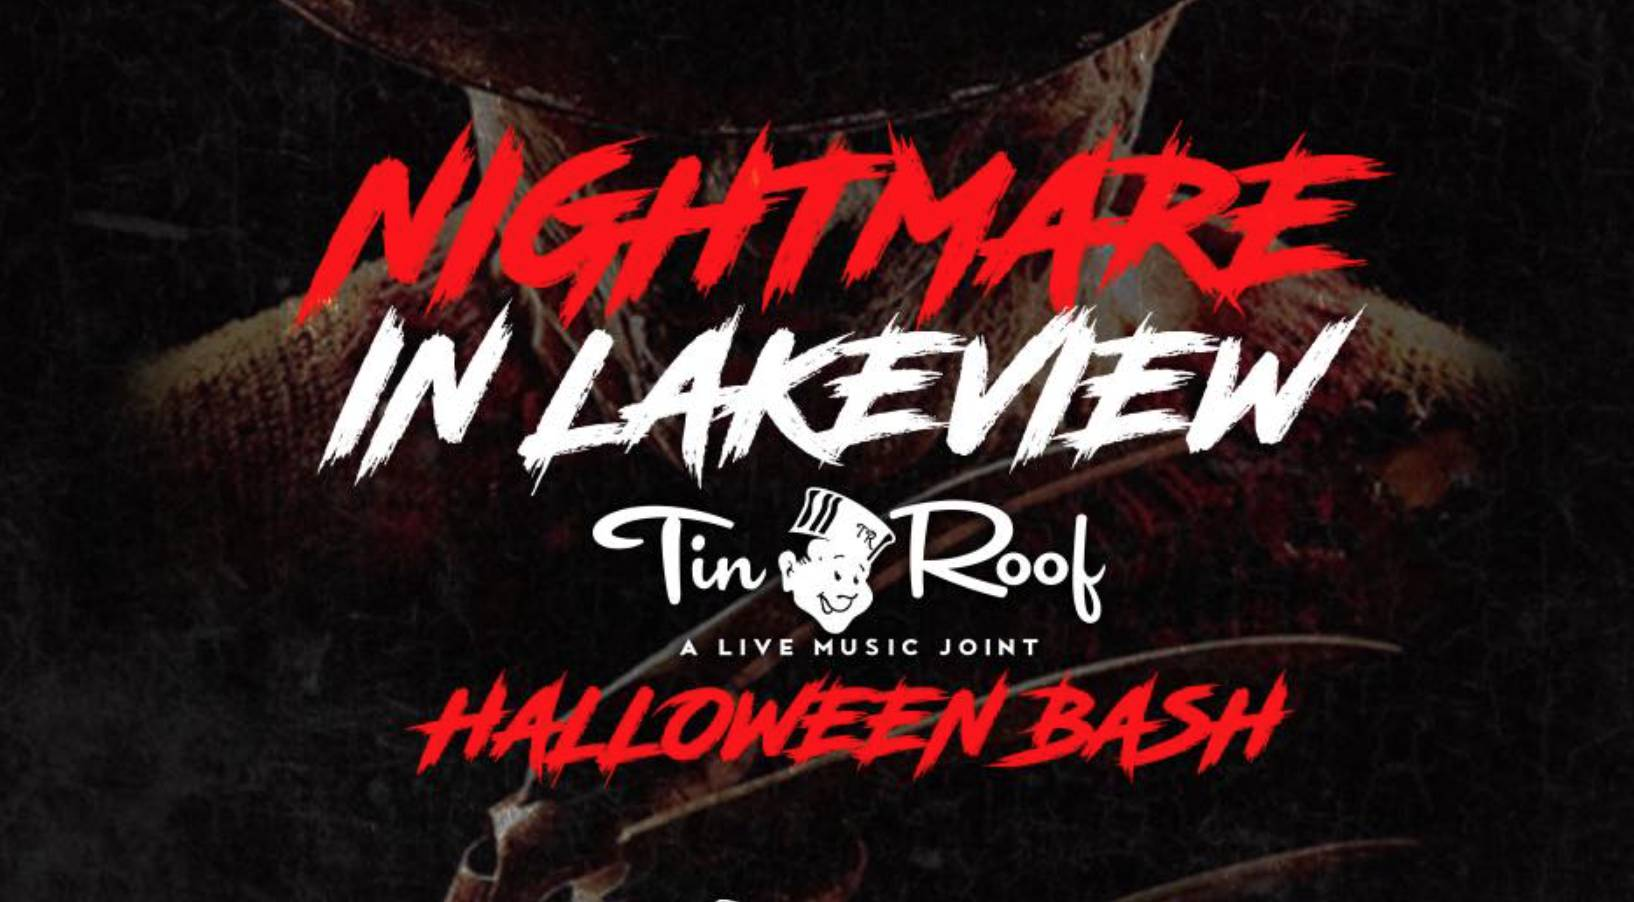 Nightmare in Lakeview